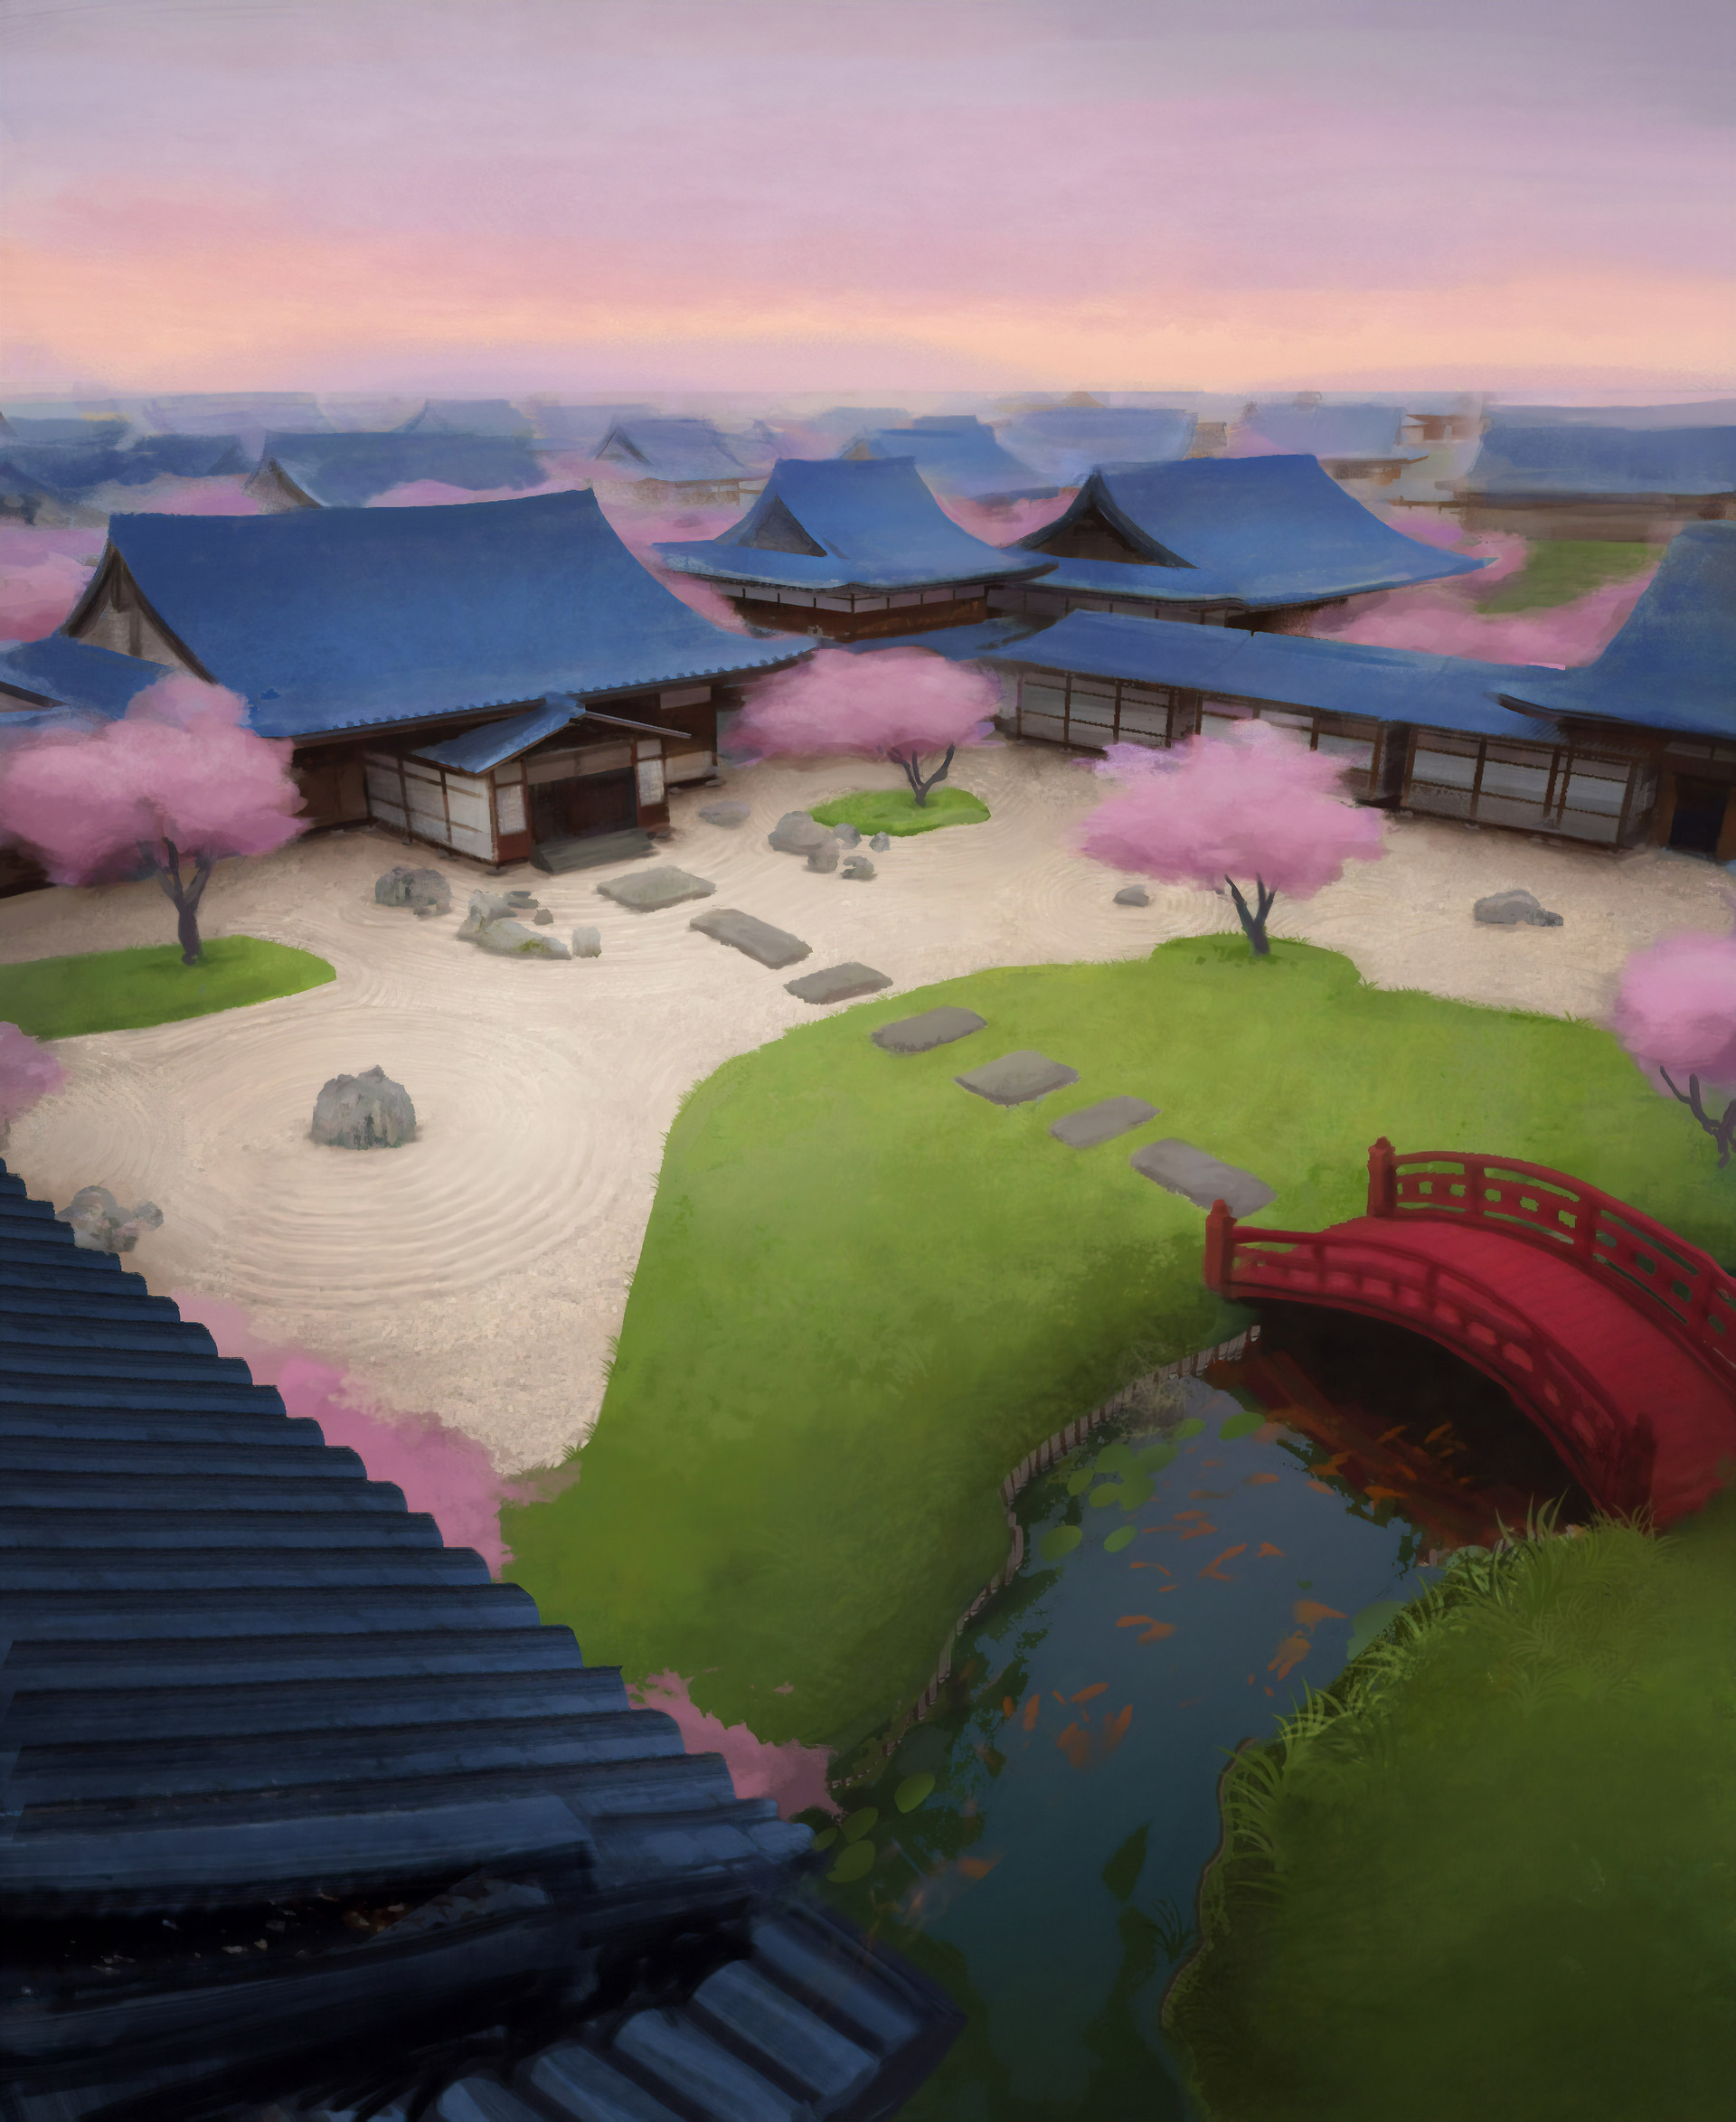 Samurai mansion overview